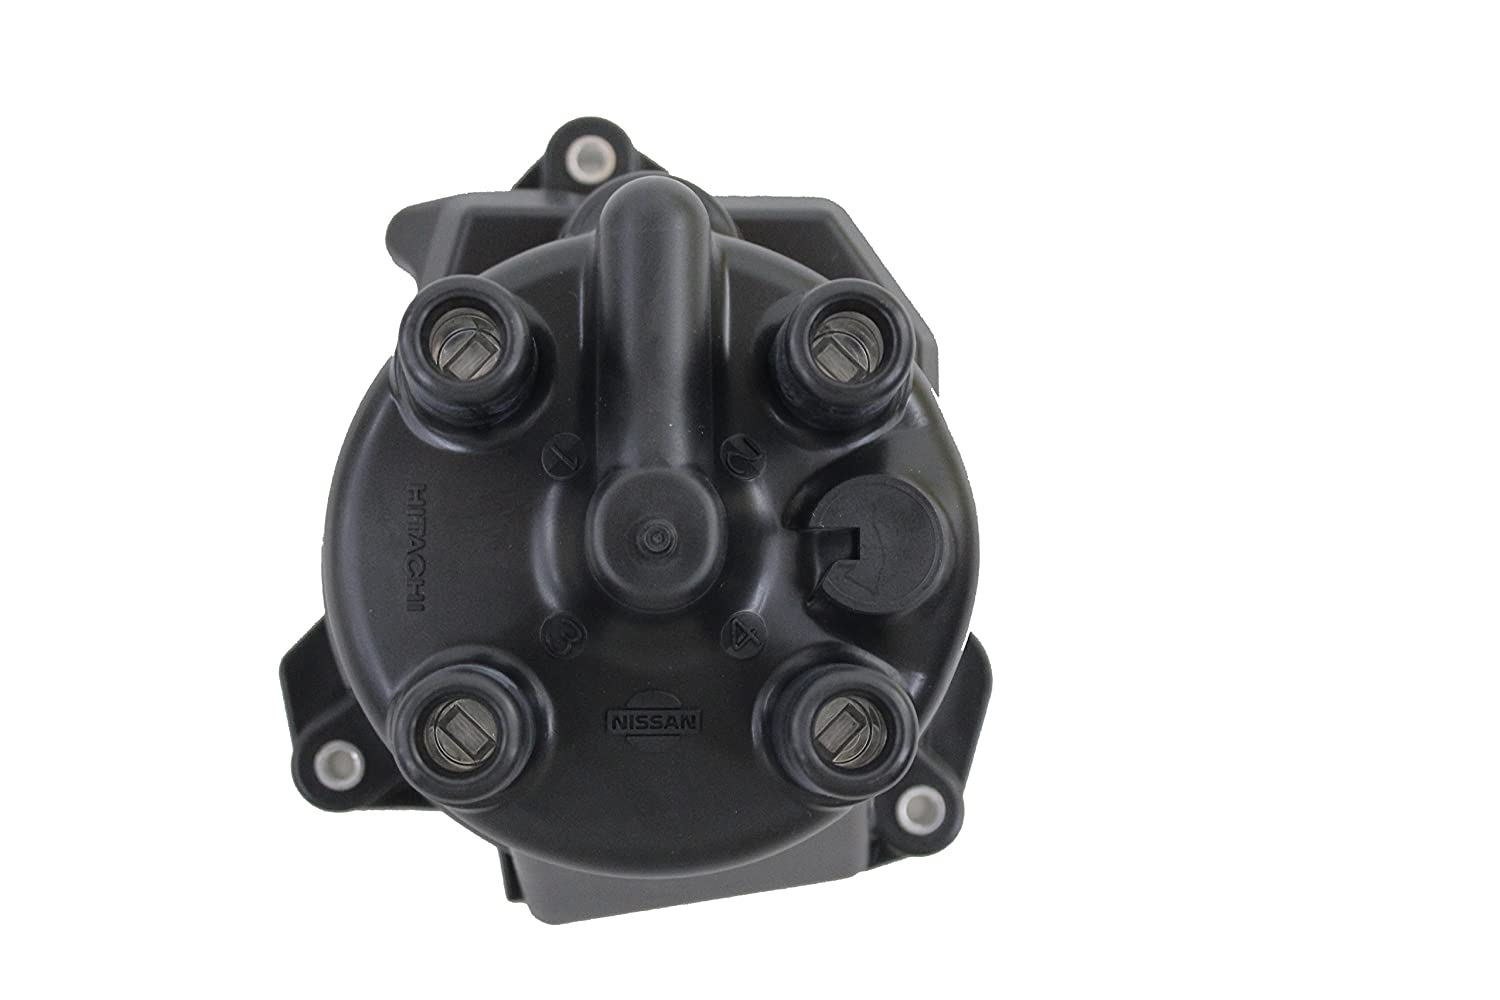 Genuine Nissan 22162 3s505 Distributor Cap Assembly 1997 Sentra Engine Thermostat Automotive